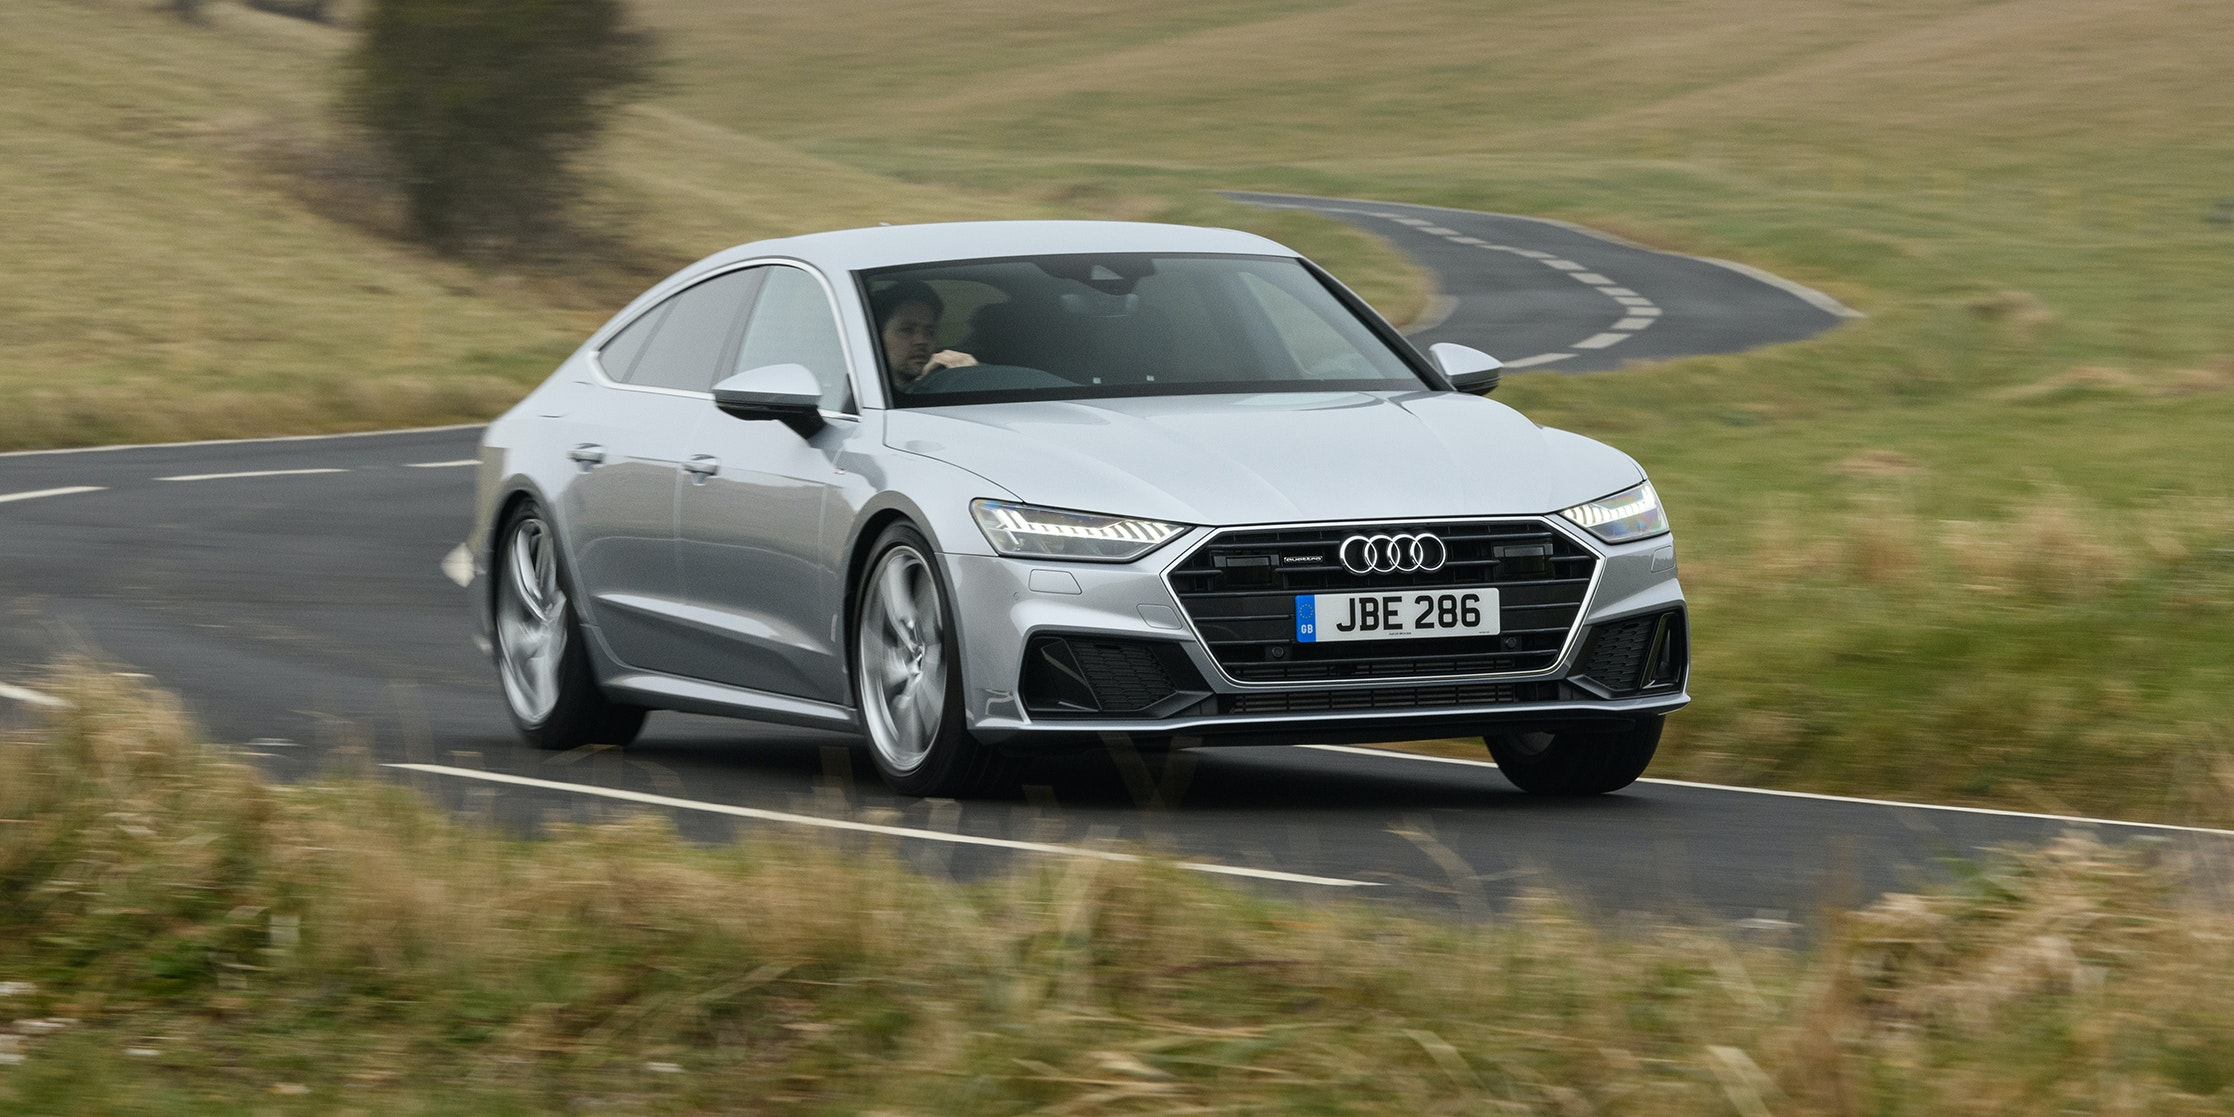 New Audi A7 Sportback Review | carwow